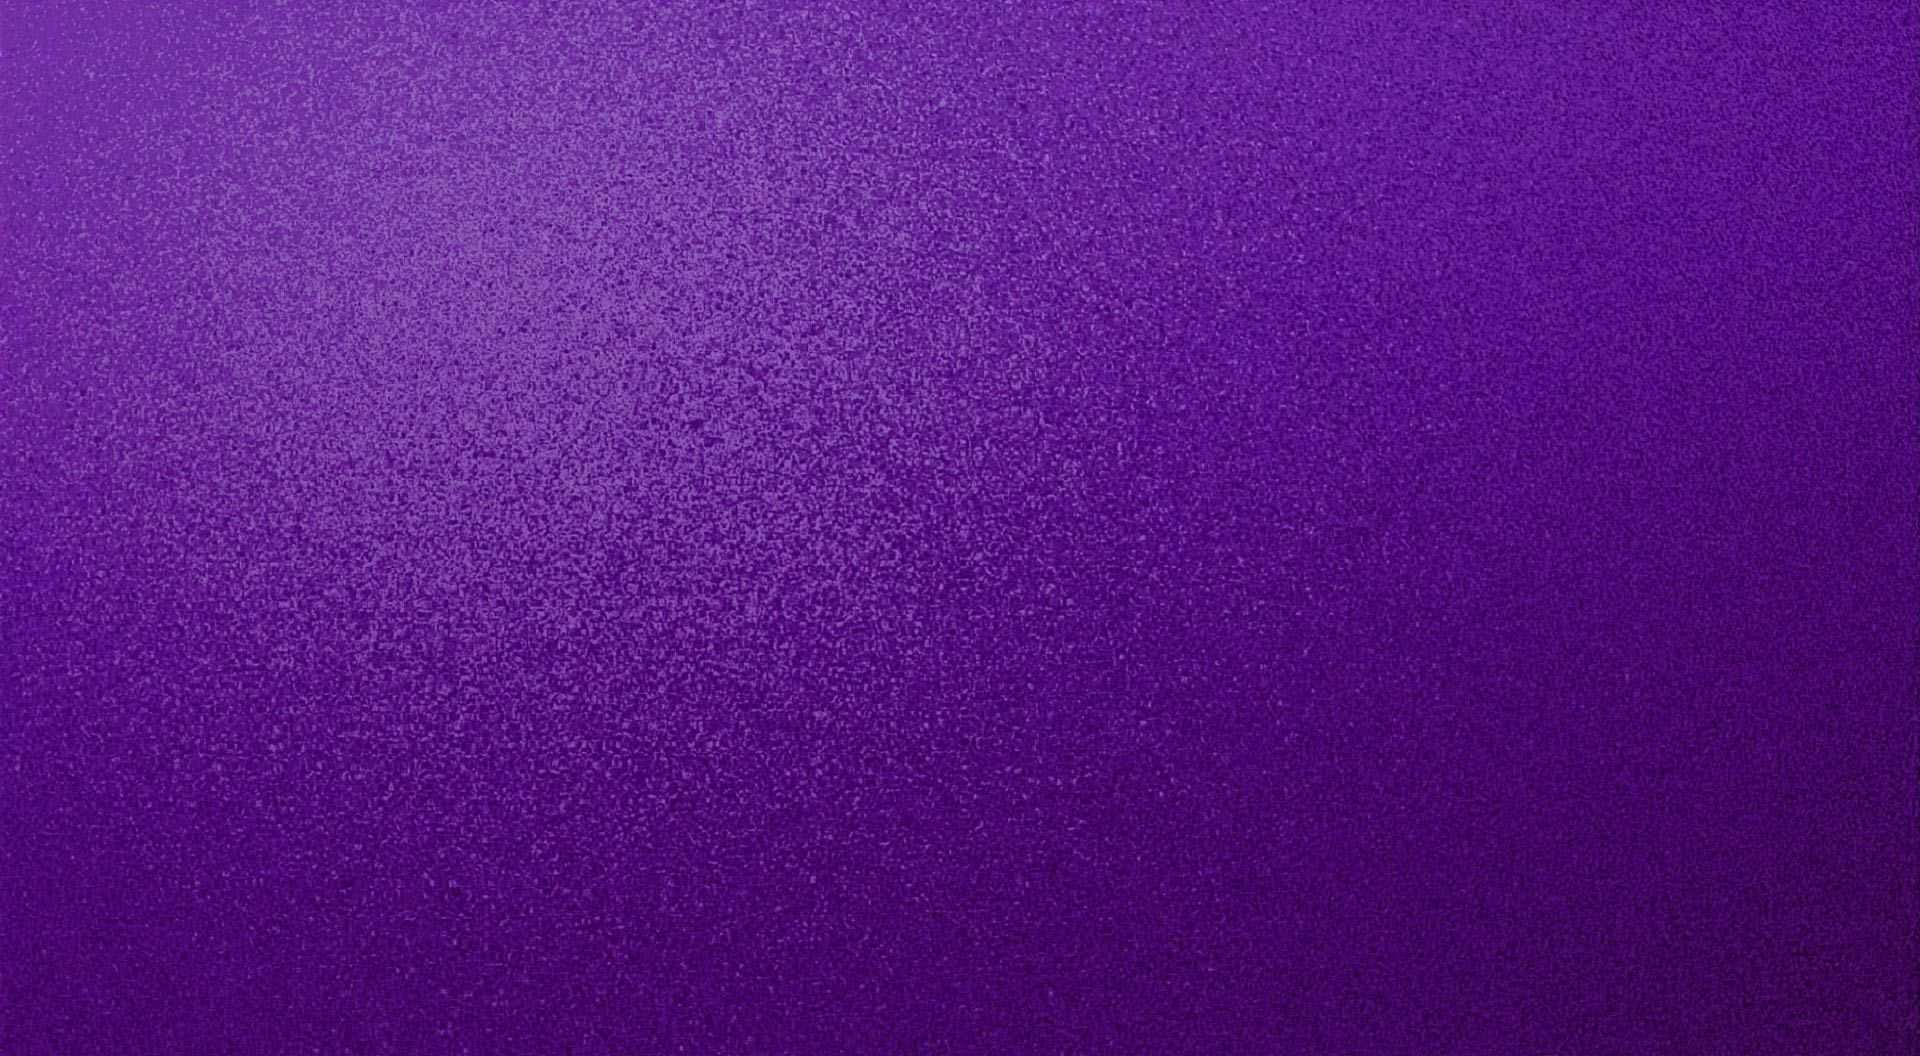 Creative Hd Wallpapers Free Download 20 Spendid Purple Backgrounds For Free Download Free